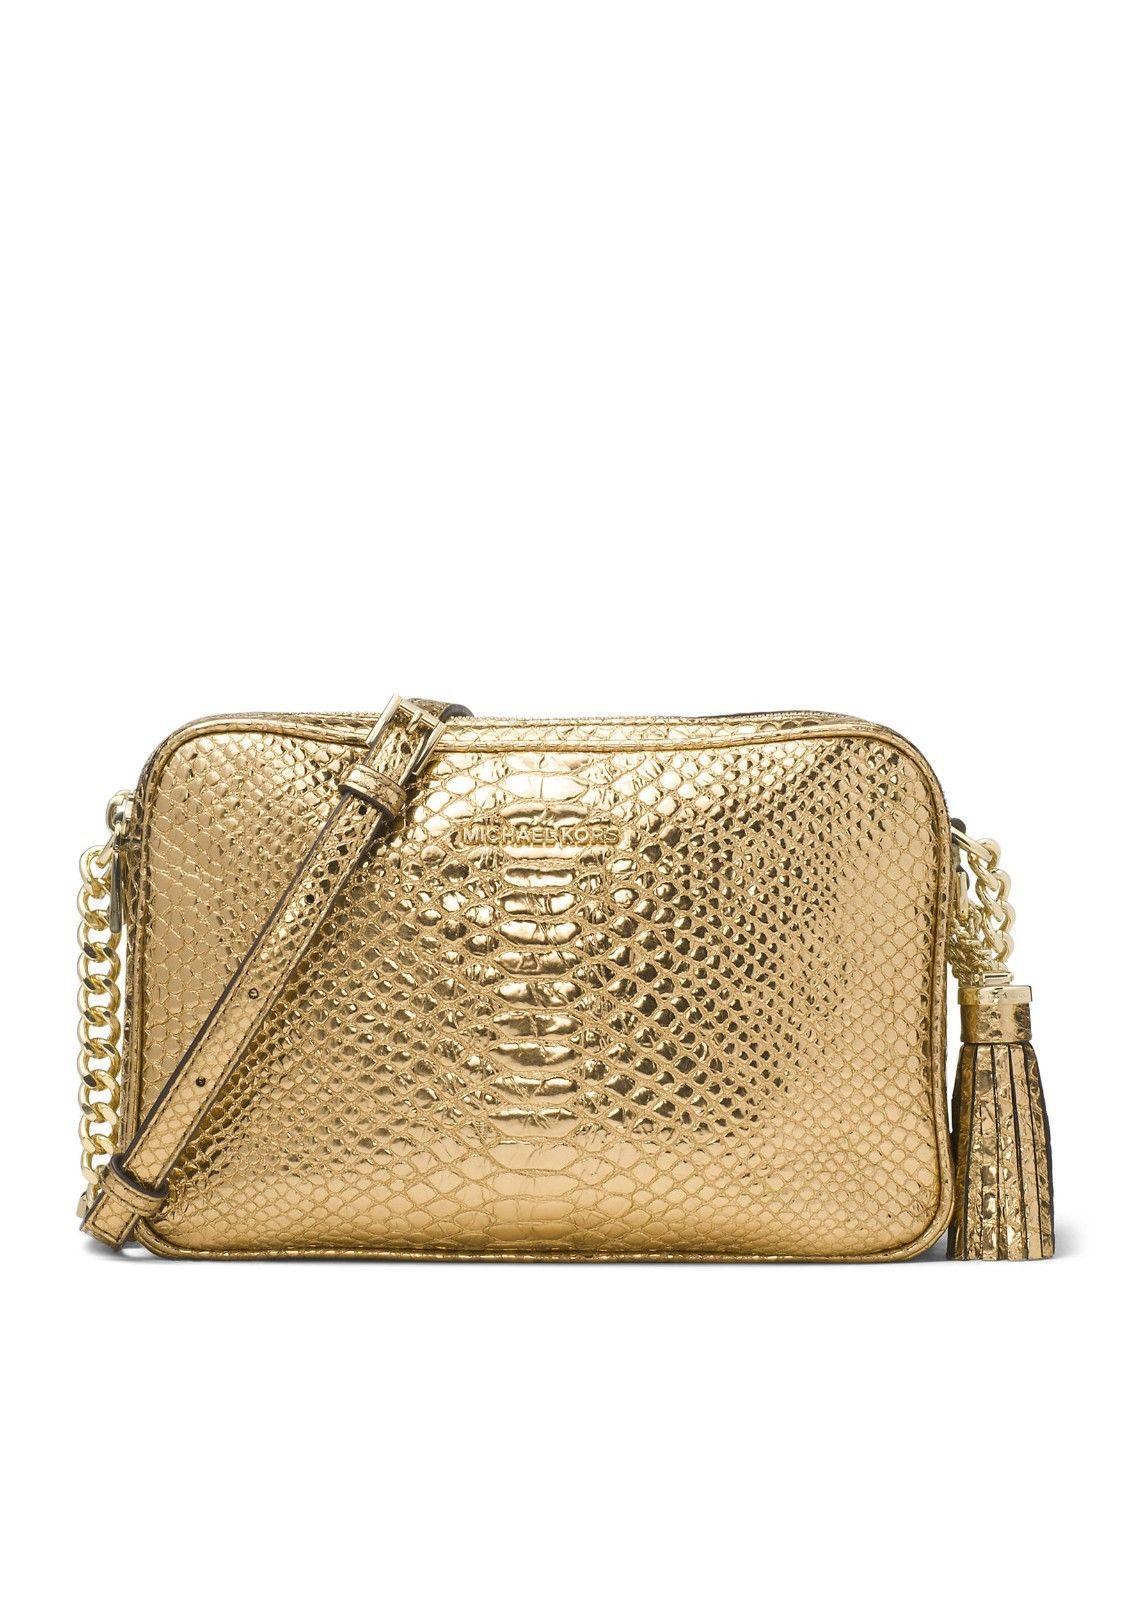 255387c7dbd6 57. 57. Previous. NEW MICHAEL KORS GINNY LARGE EMBOSSED LEATHER GOLD CAMERA  BAG CROSSBODY PURSE. NEW MICHAEL ...